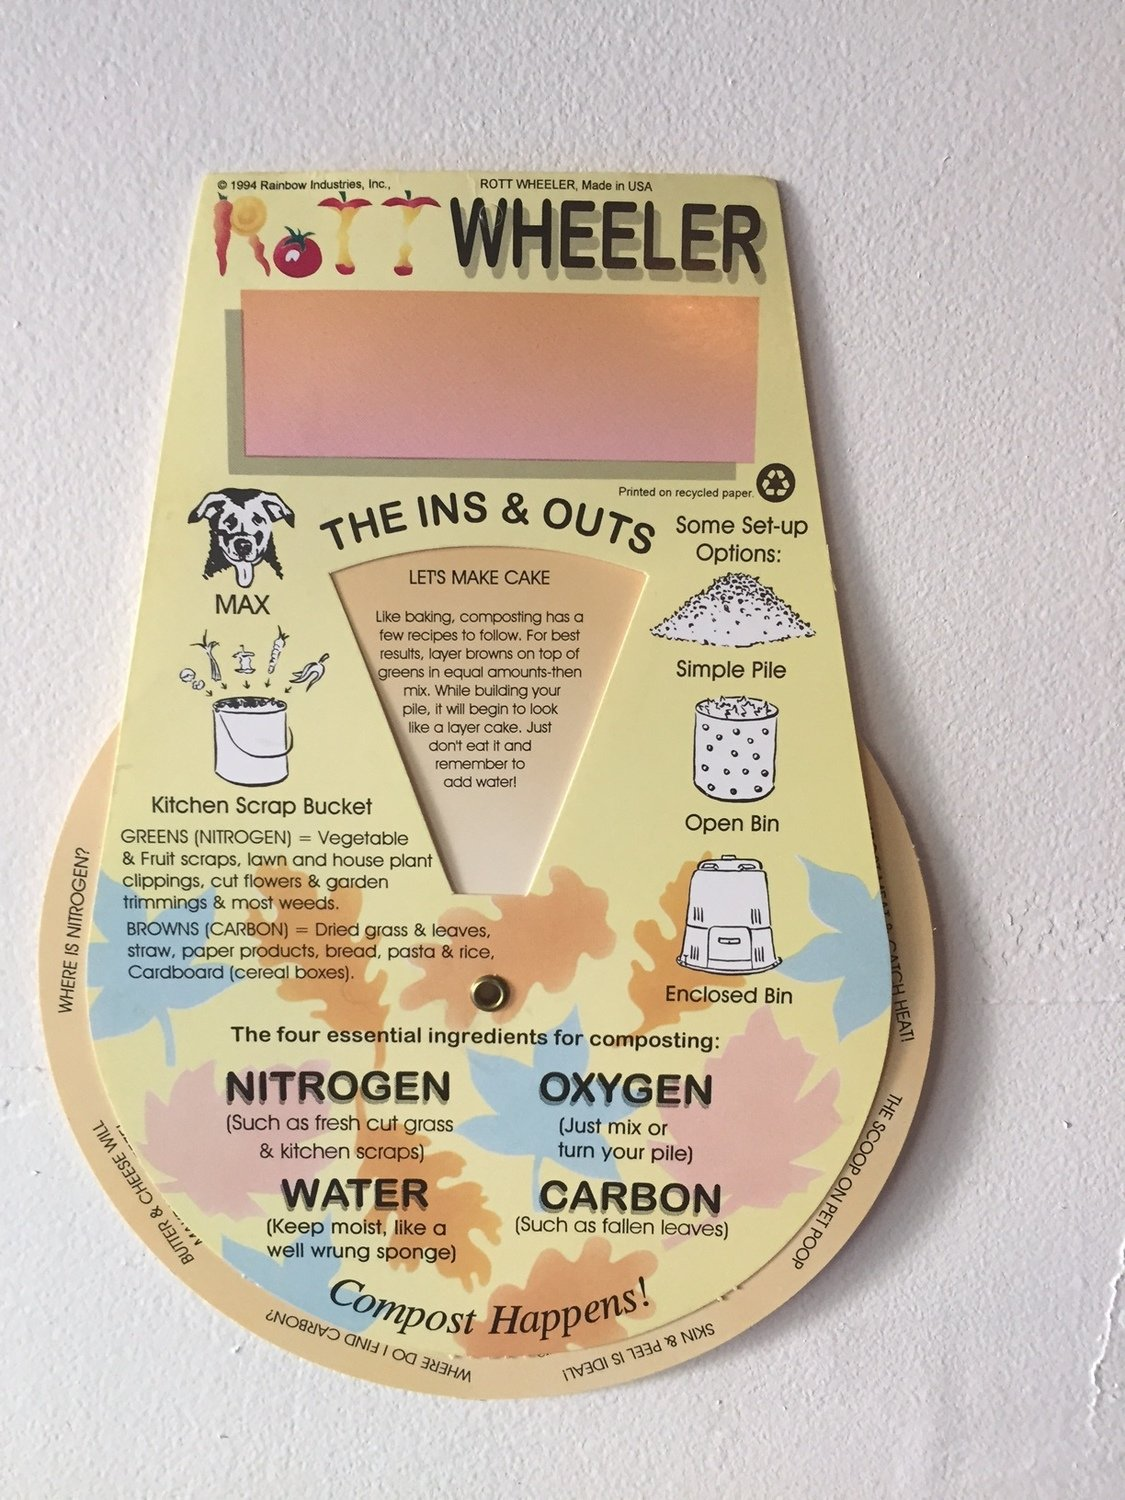 Rottwheeler - educational dial (FREE with the purchase of an Earth Machine!)